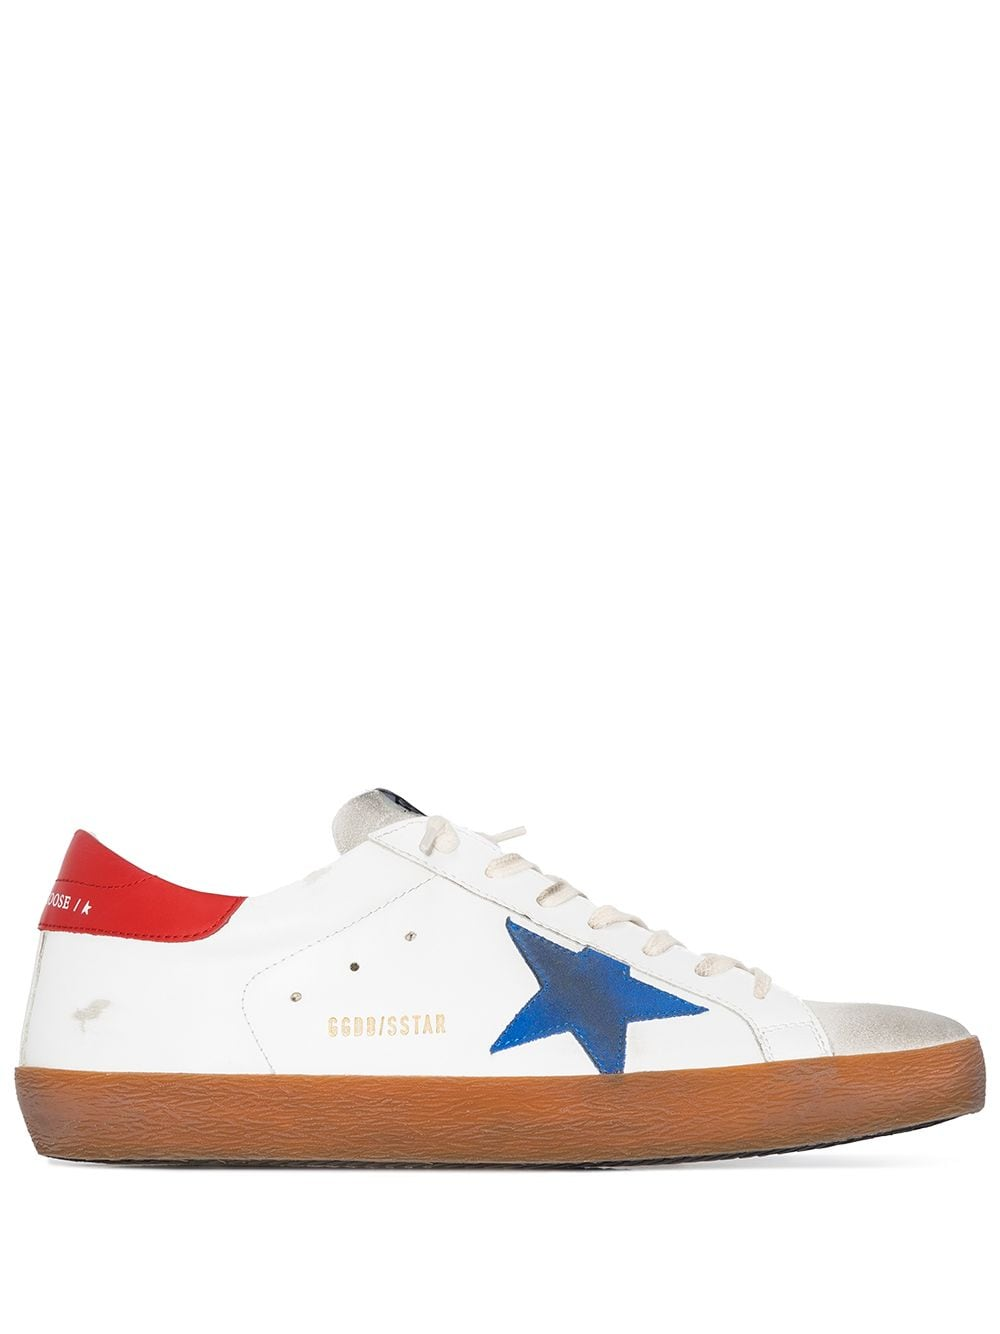 Men's Superstar Leather Sneakers